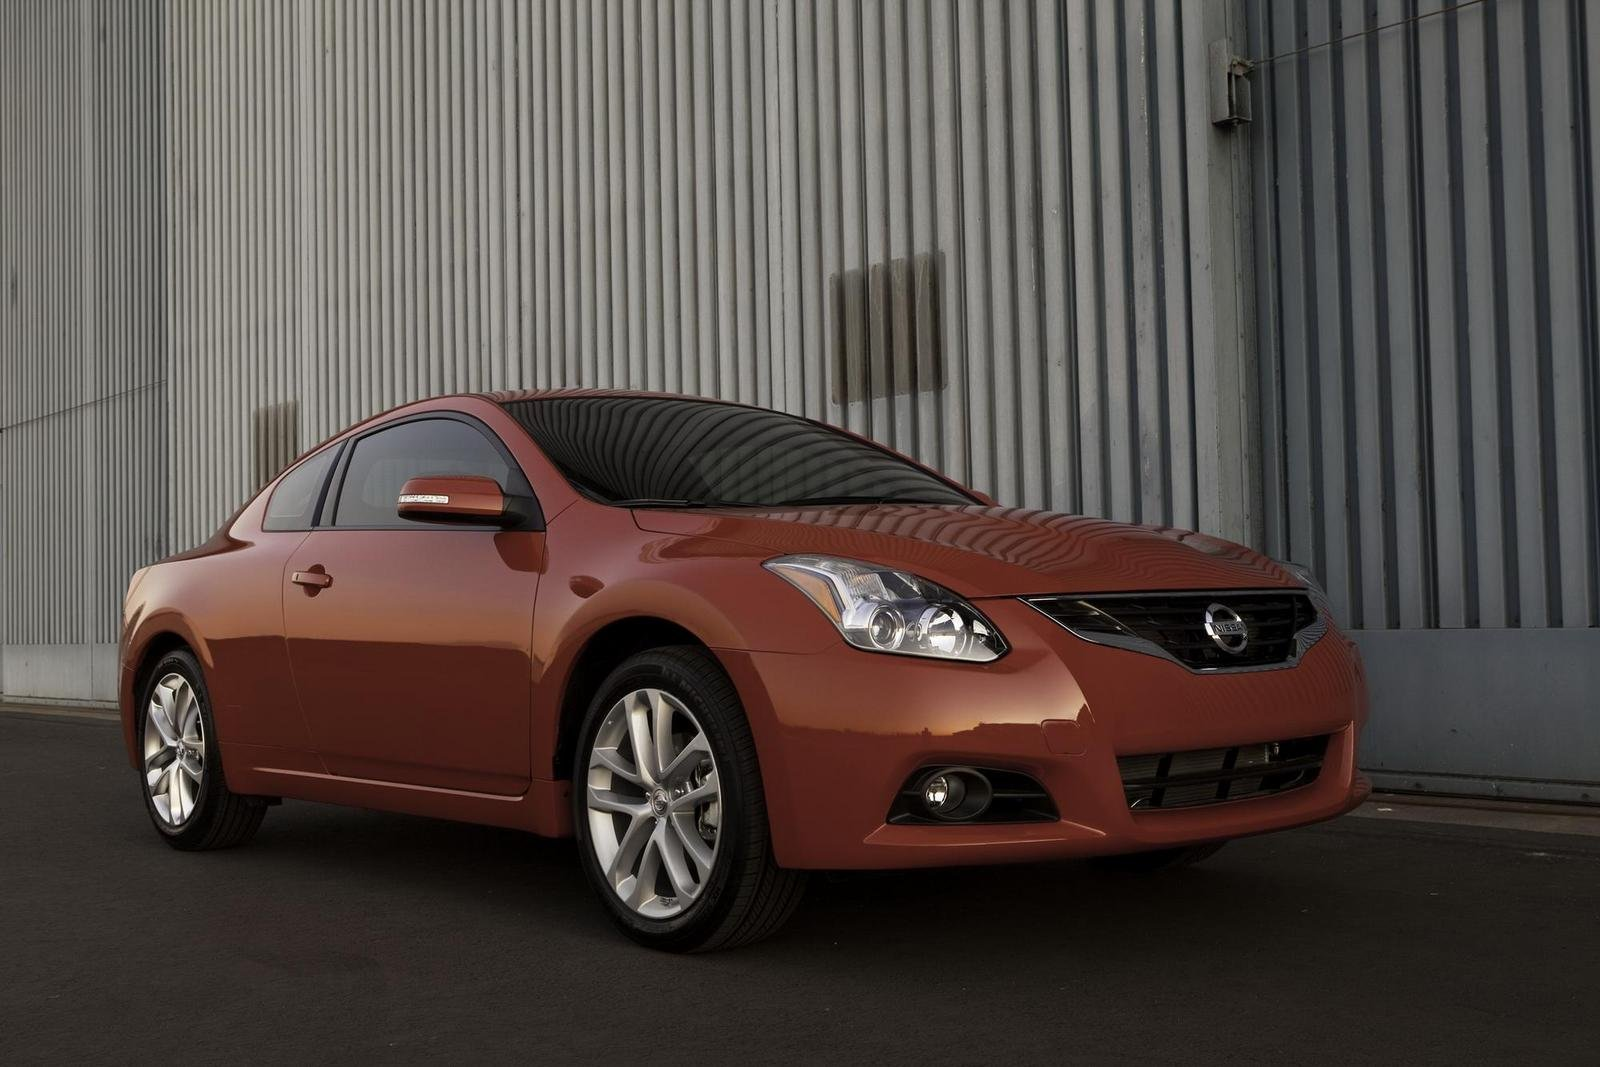 Nissan Altima 3.5 >> 2010 Nissan Altima Coupe Review - Top Speed